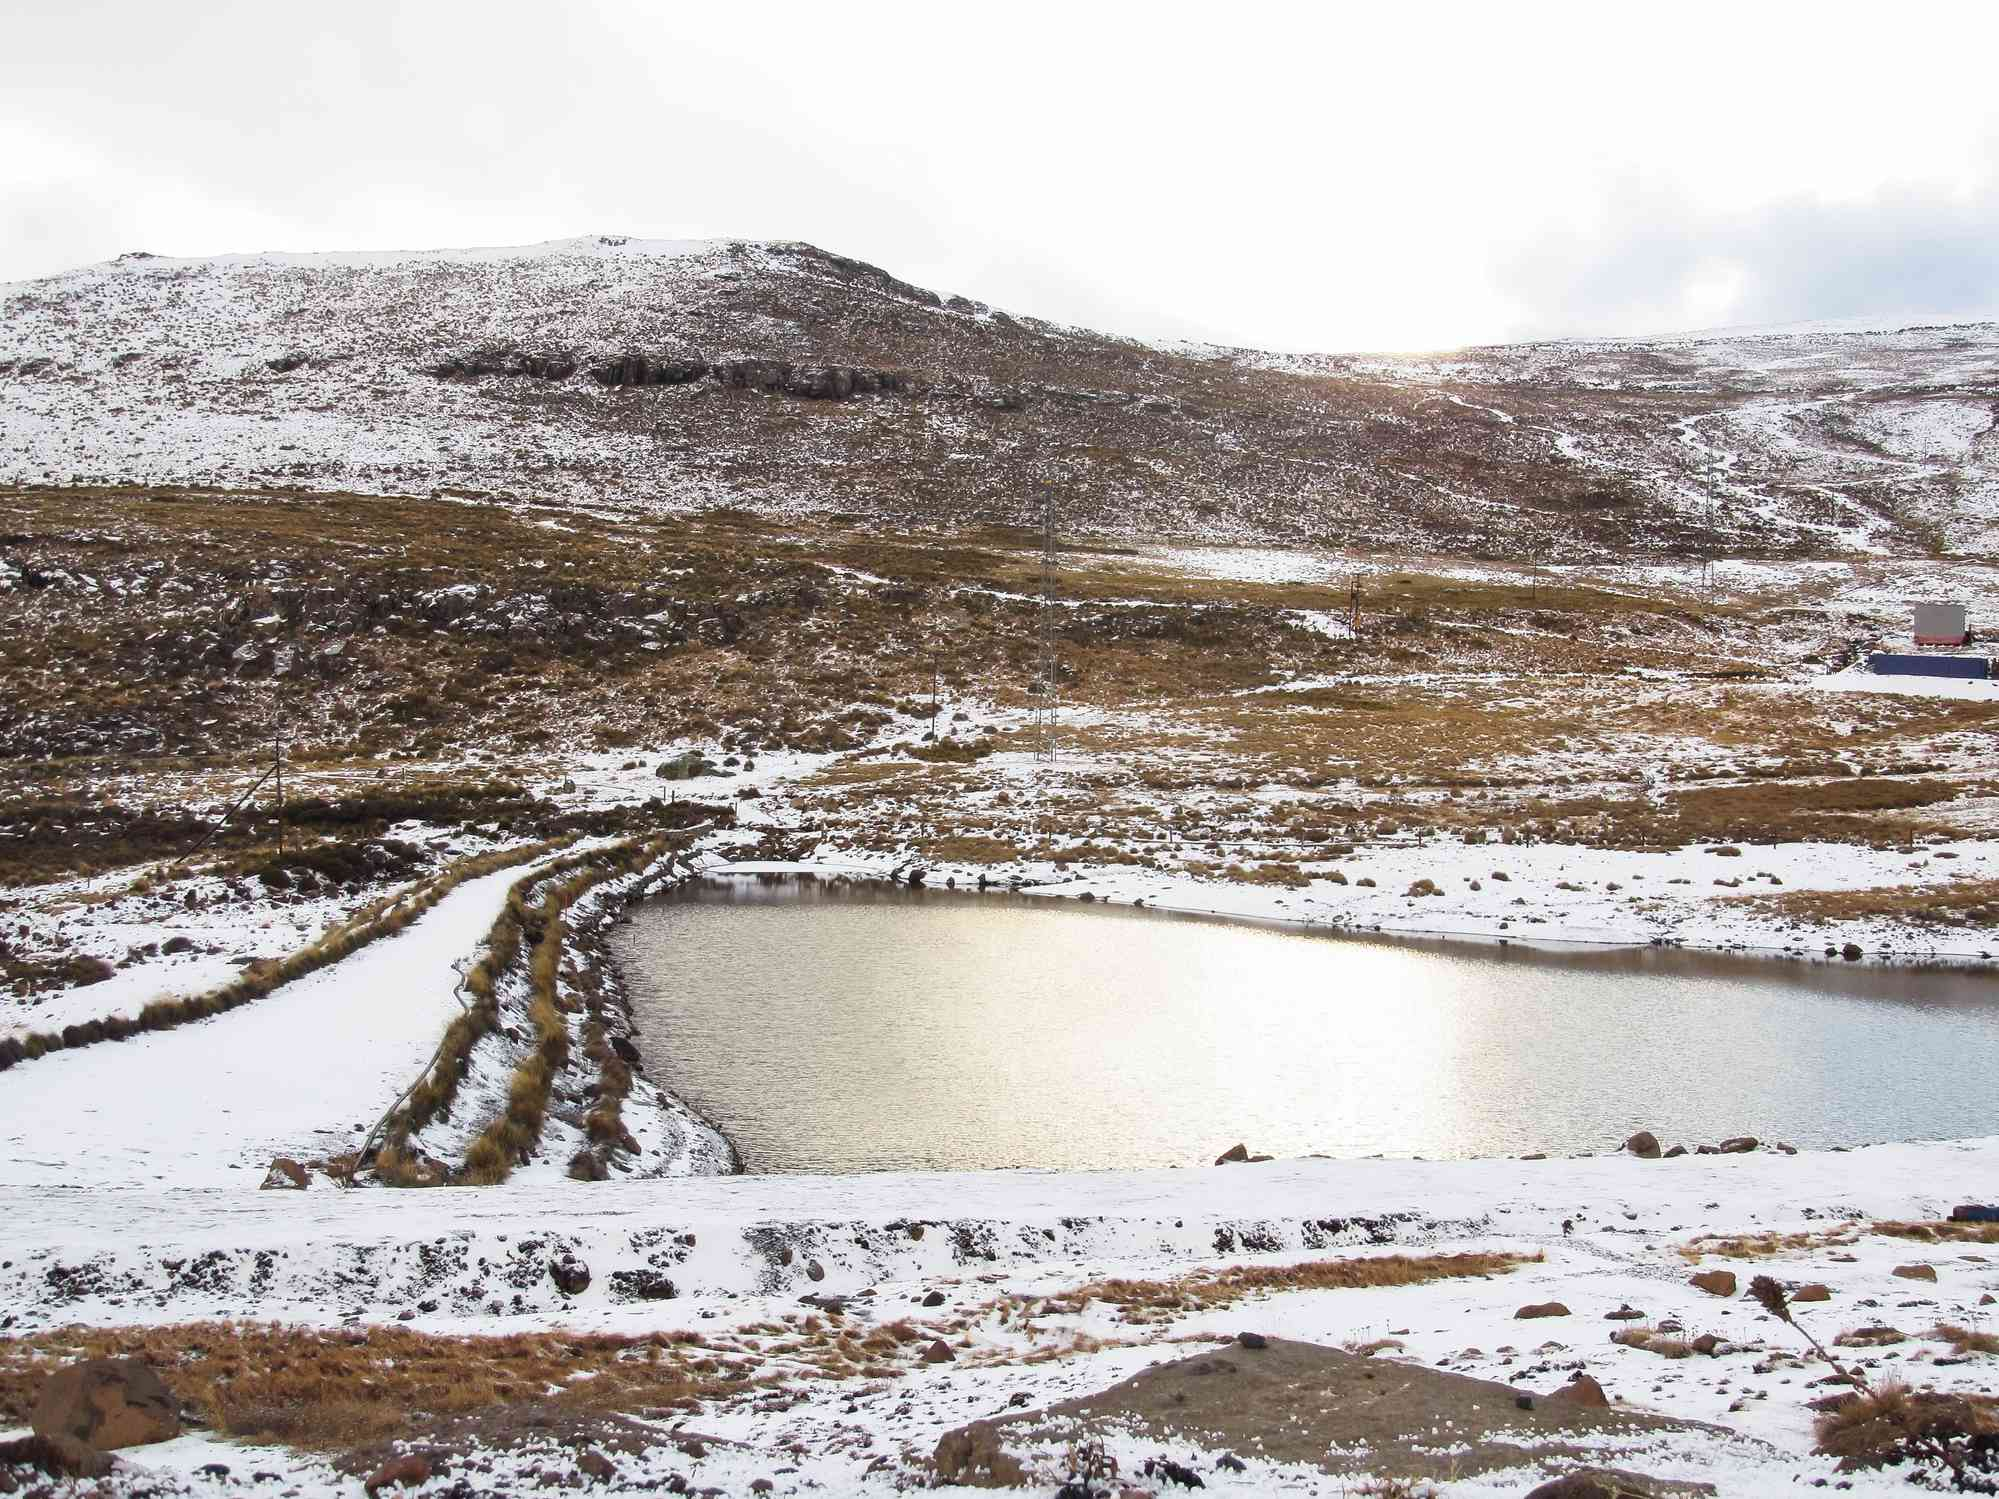 View of Maluti mountains lightly covered in snow, with portions of the brown grown below showing through, with a lake in the center during winter season in Lesotho.